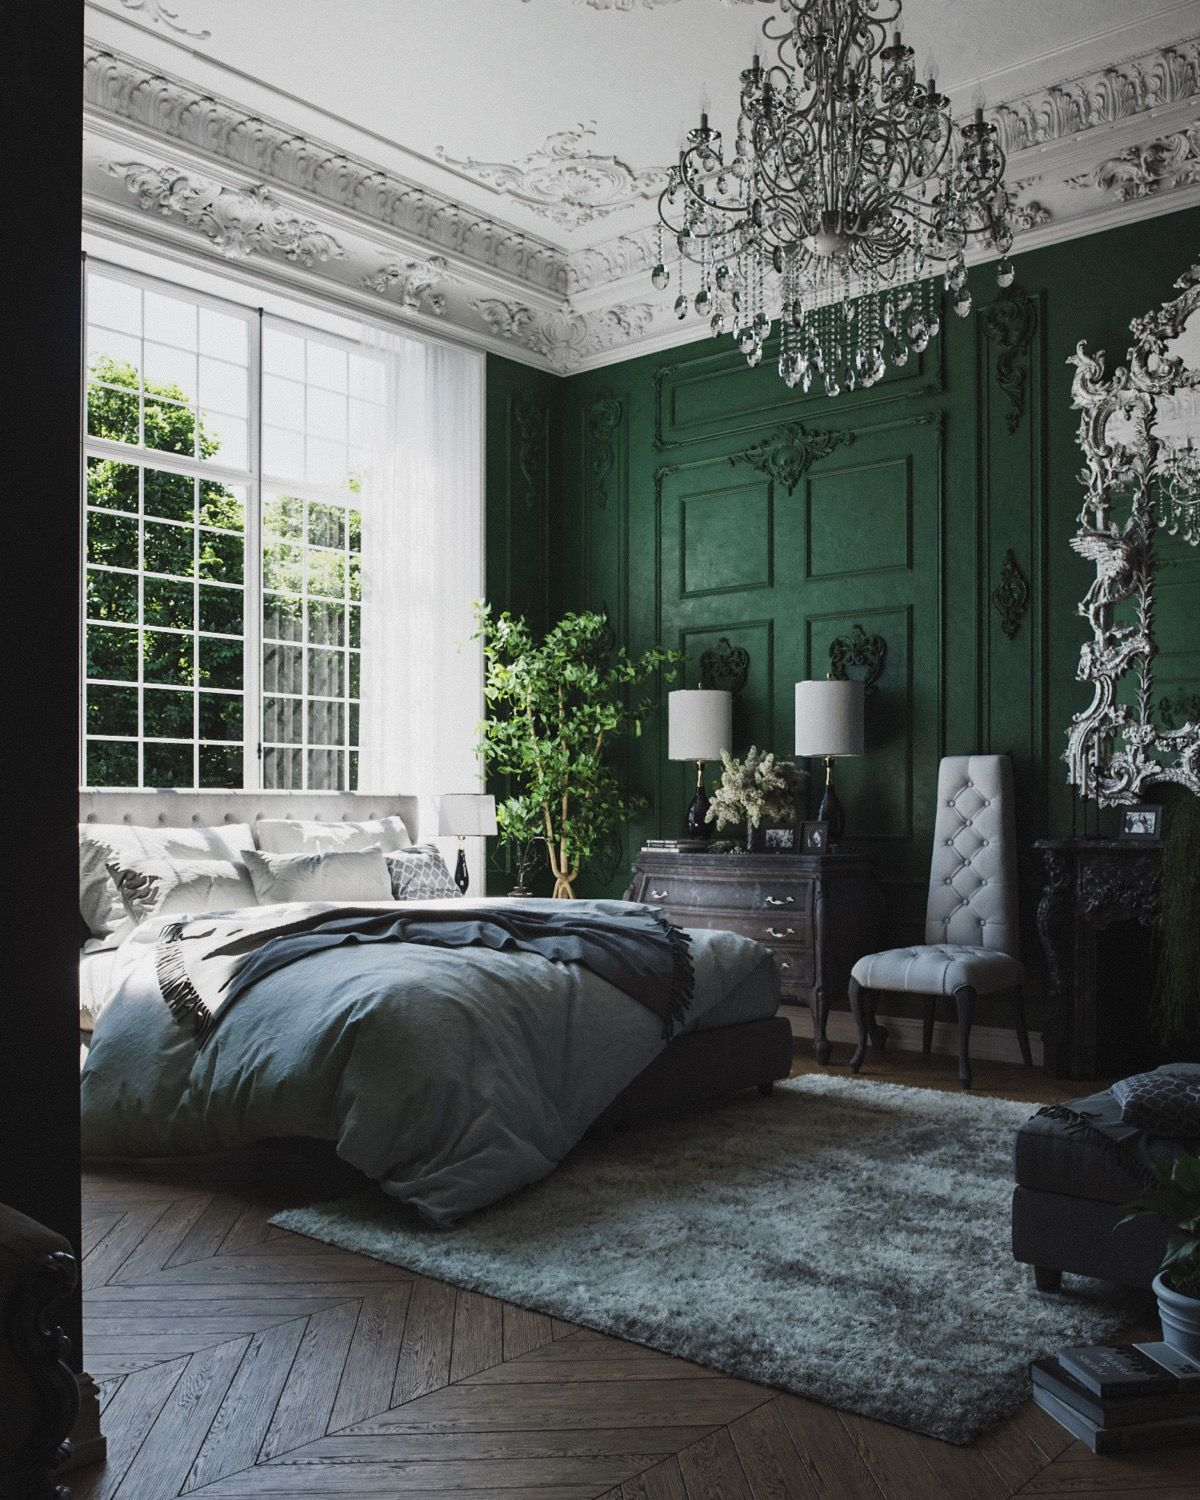 51 Green Bedrooms With Tips And Accessories To Help You Design